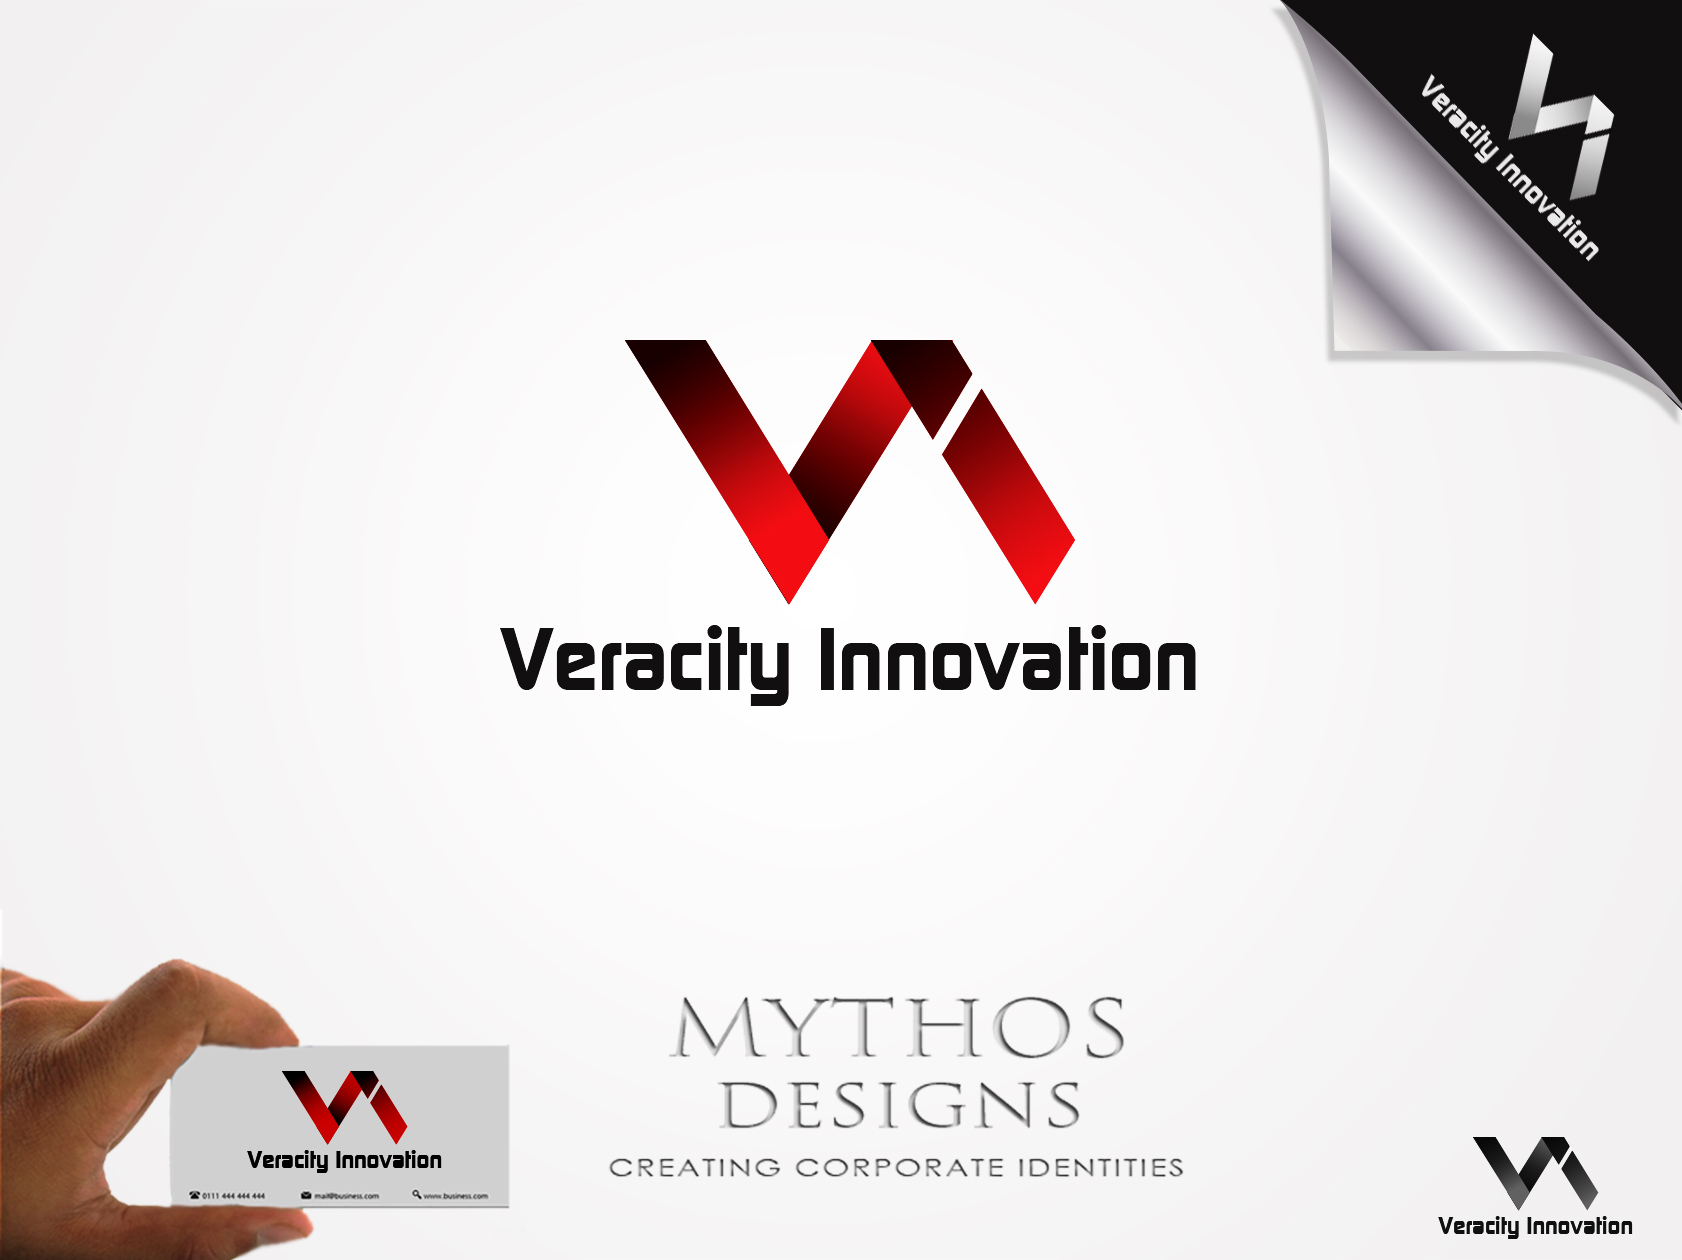 Logo Design by Mythos Designs - Entry No. 256 in the Logo Design Contest Creative Logo Design for Veracity Innovation, LLC.